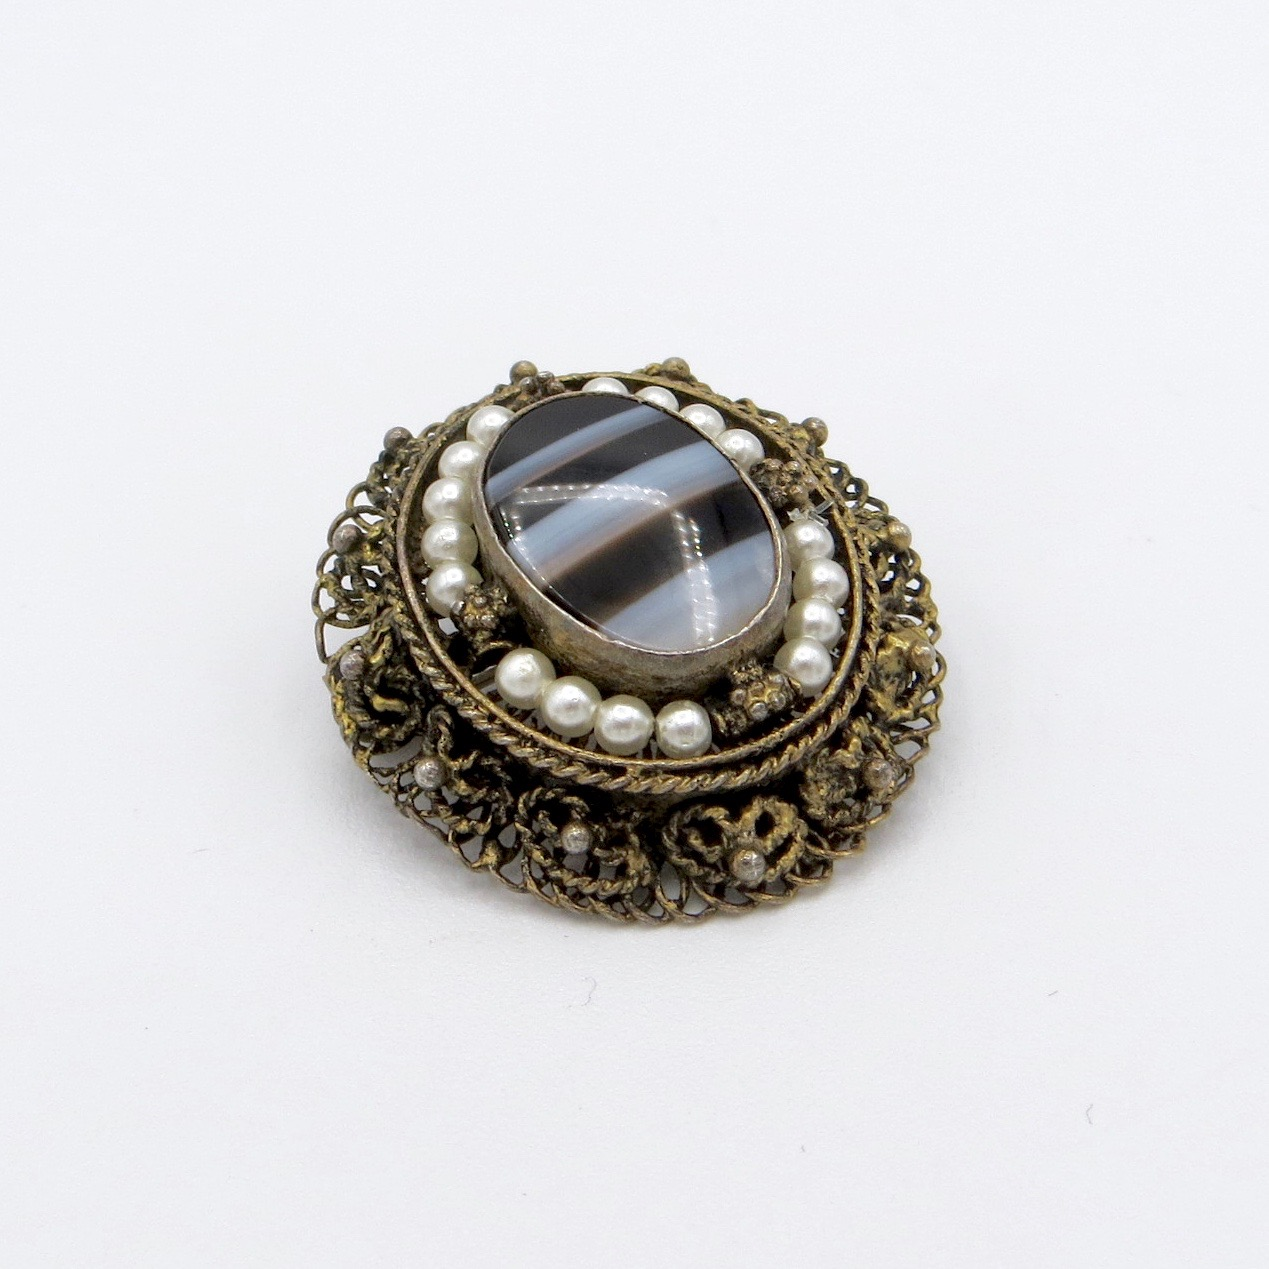 Agate Brooch with Pearls